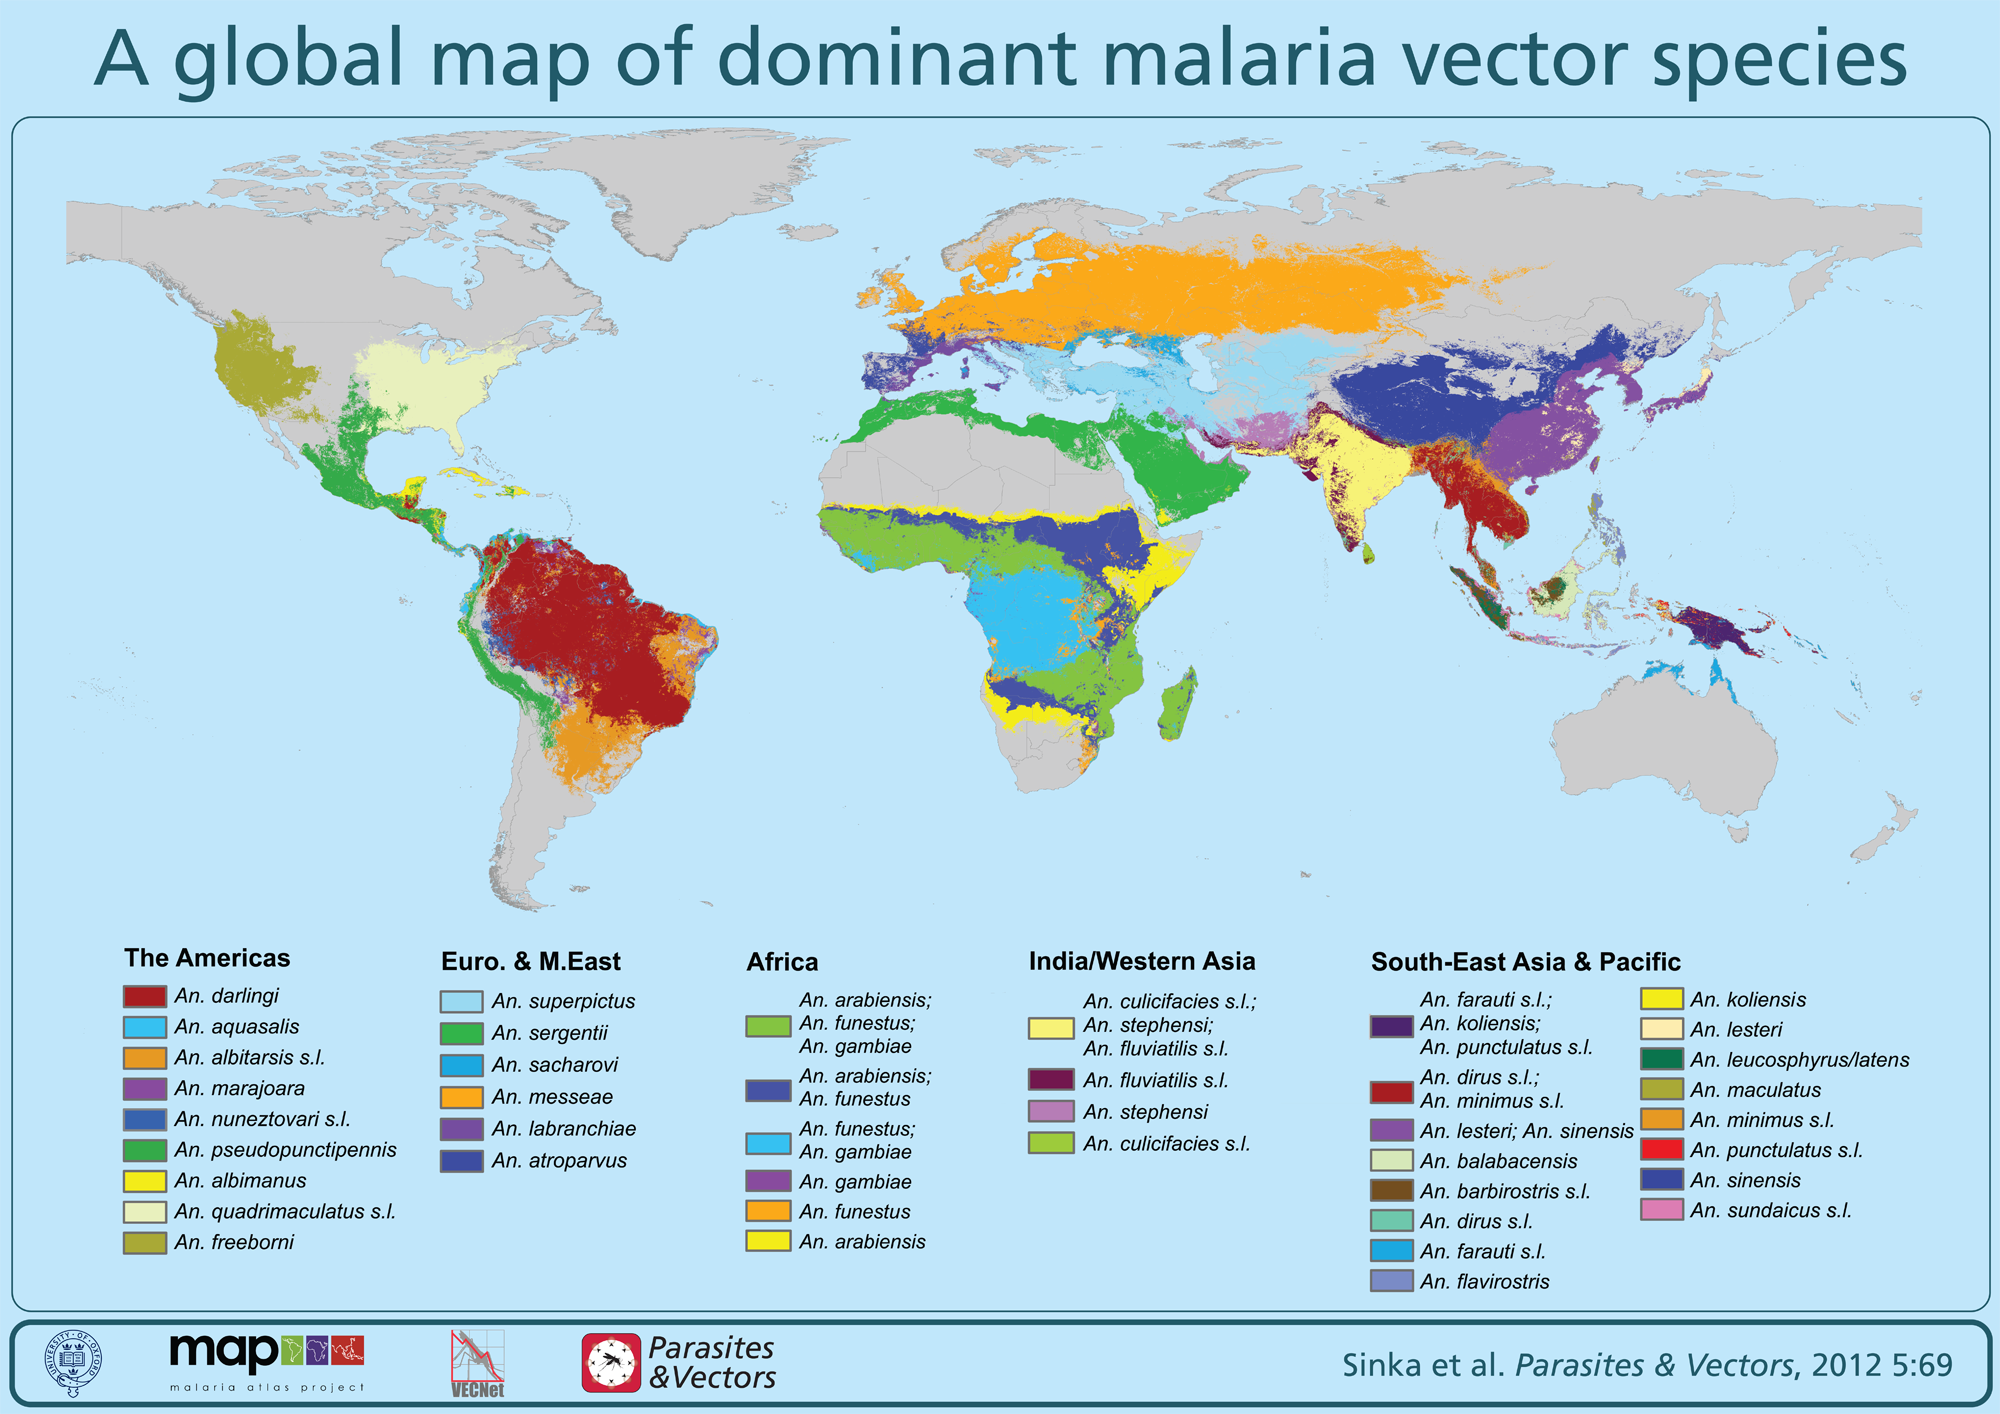 Malaria in the Americas presents a complex picture on map of africa aids, map of africa water, map of africa hiv, map of africa starvation, map of africa ebola, map of africa birth rate, map of africa david livingstone, map of africa songhai empire, map of africa western, map of africa lake volta, map of africa disease, map of africa poverty, map of africa yellow fever, map of africa desertification, map of africa hookworm,